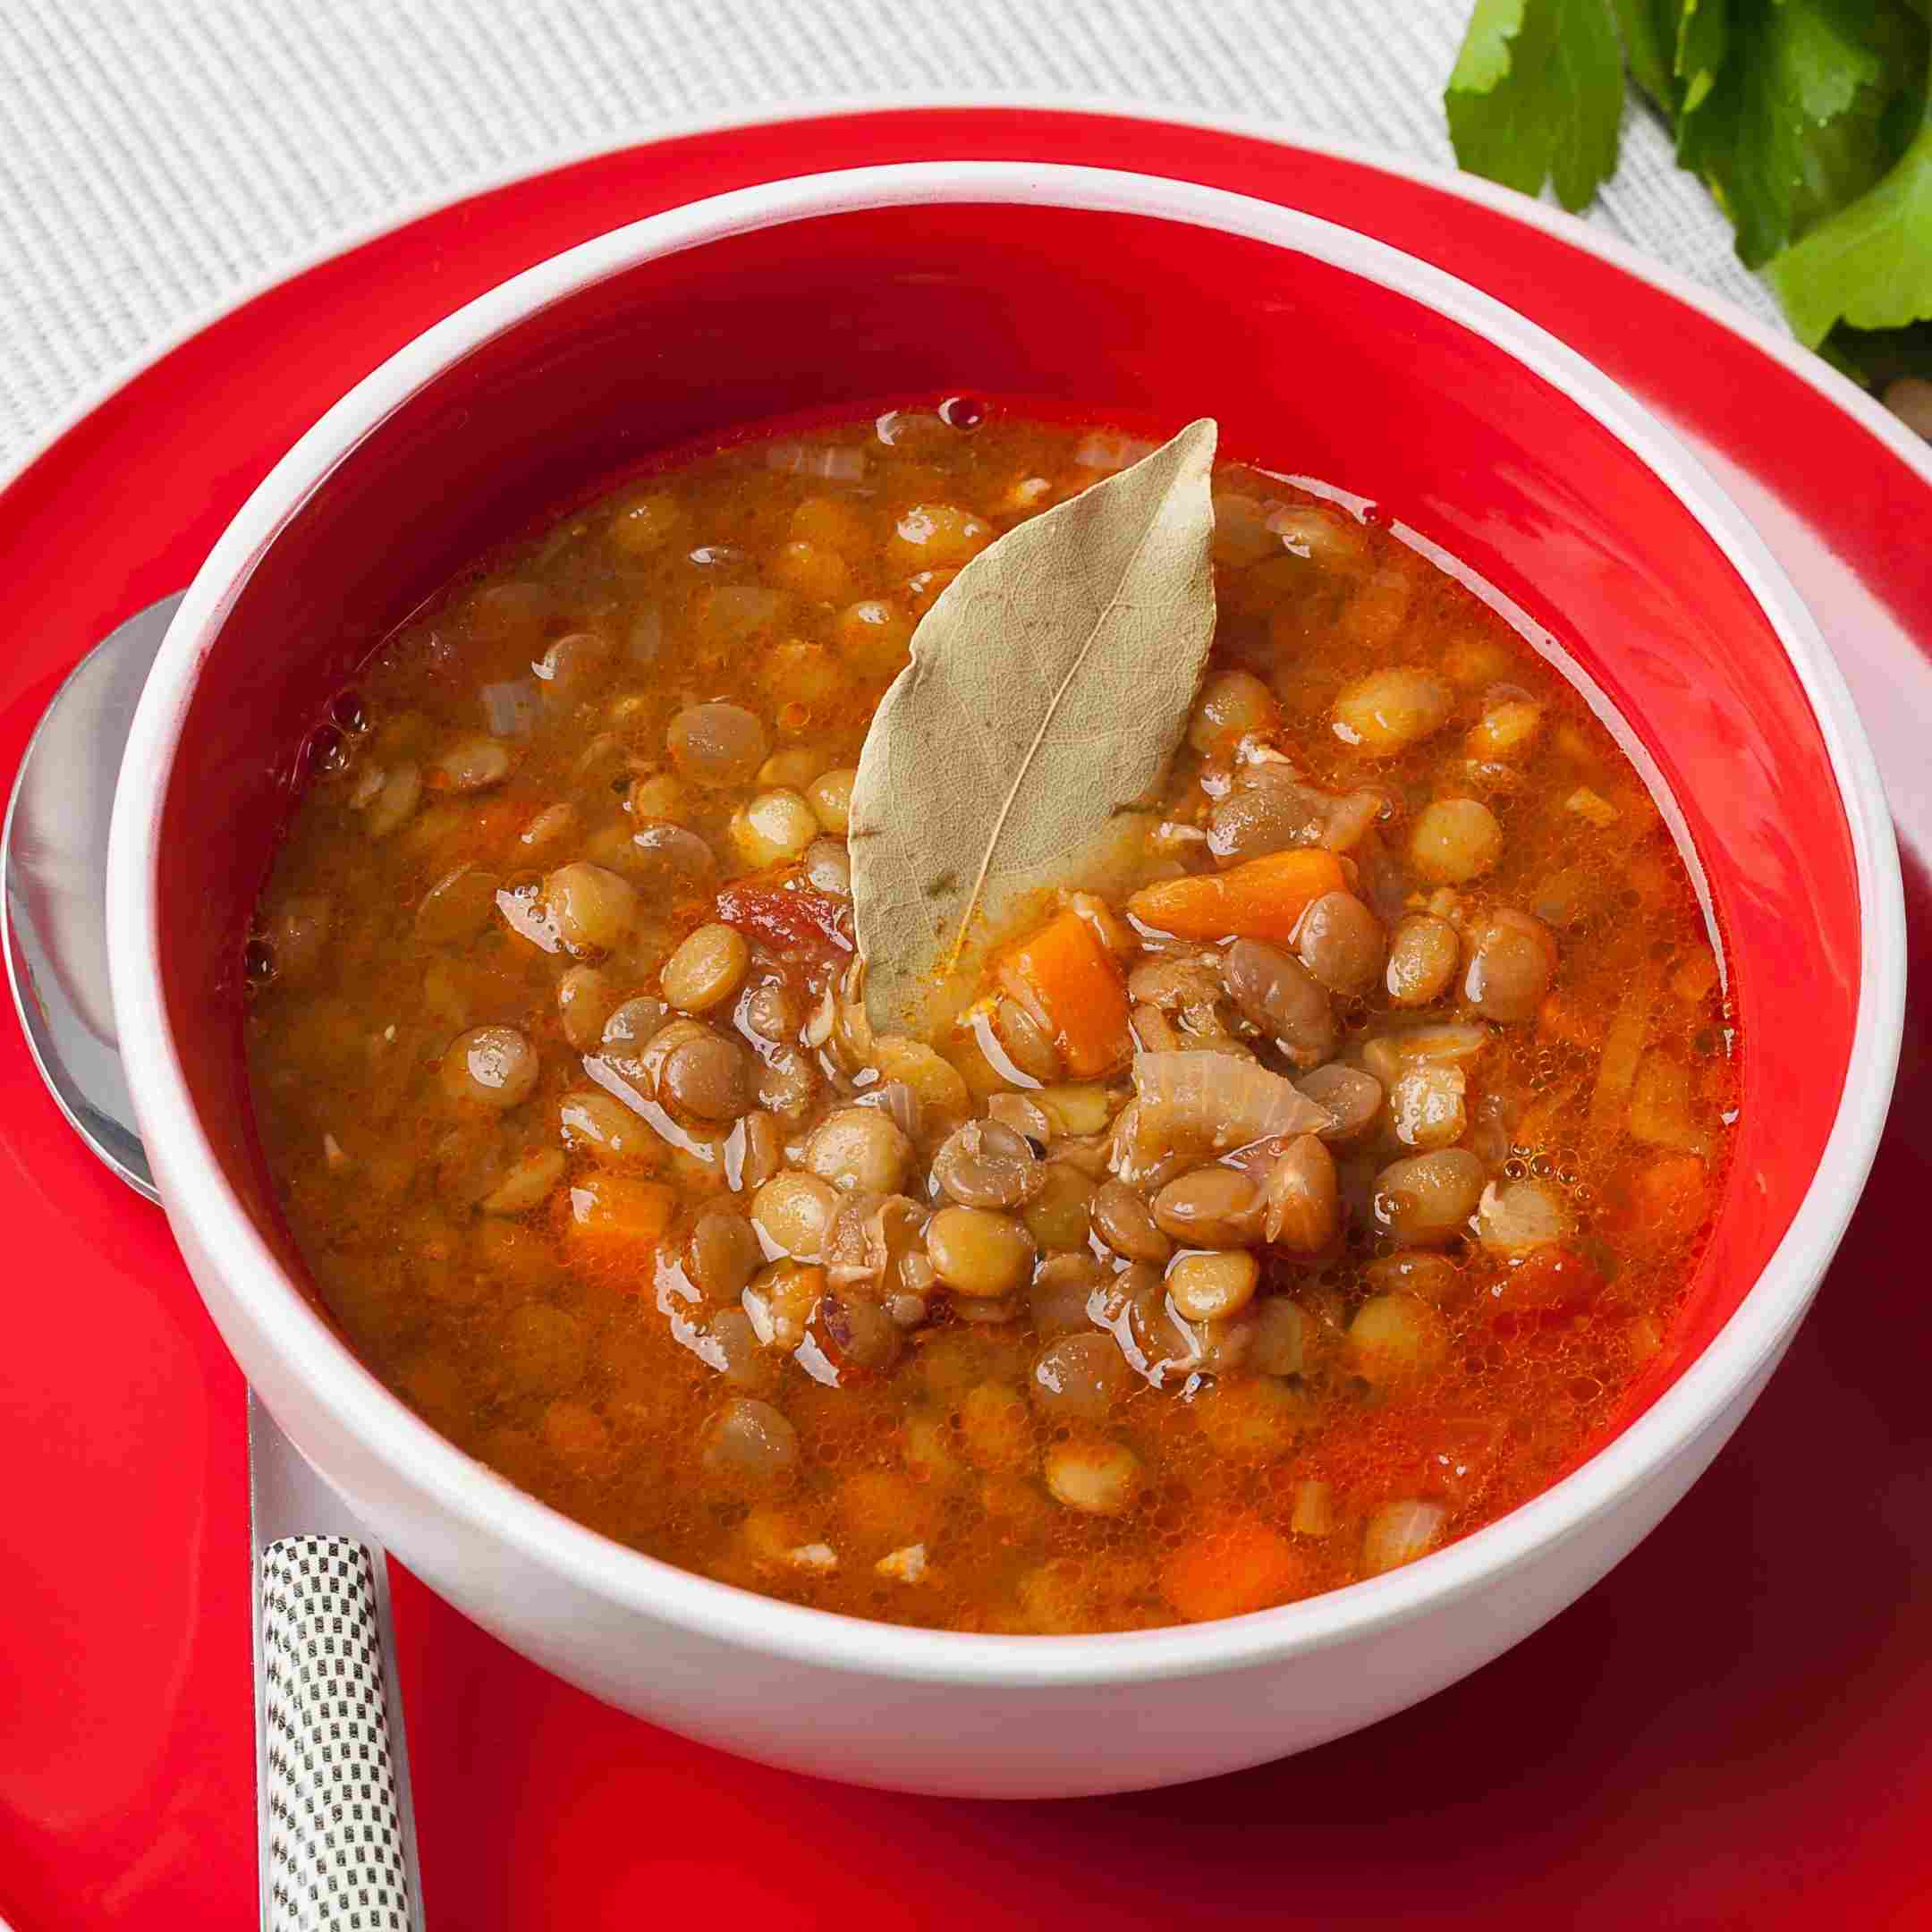 soup made of legumes